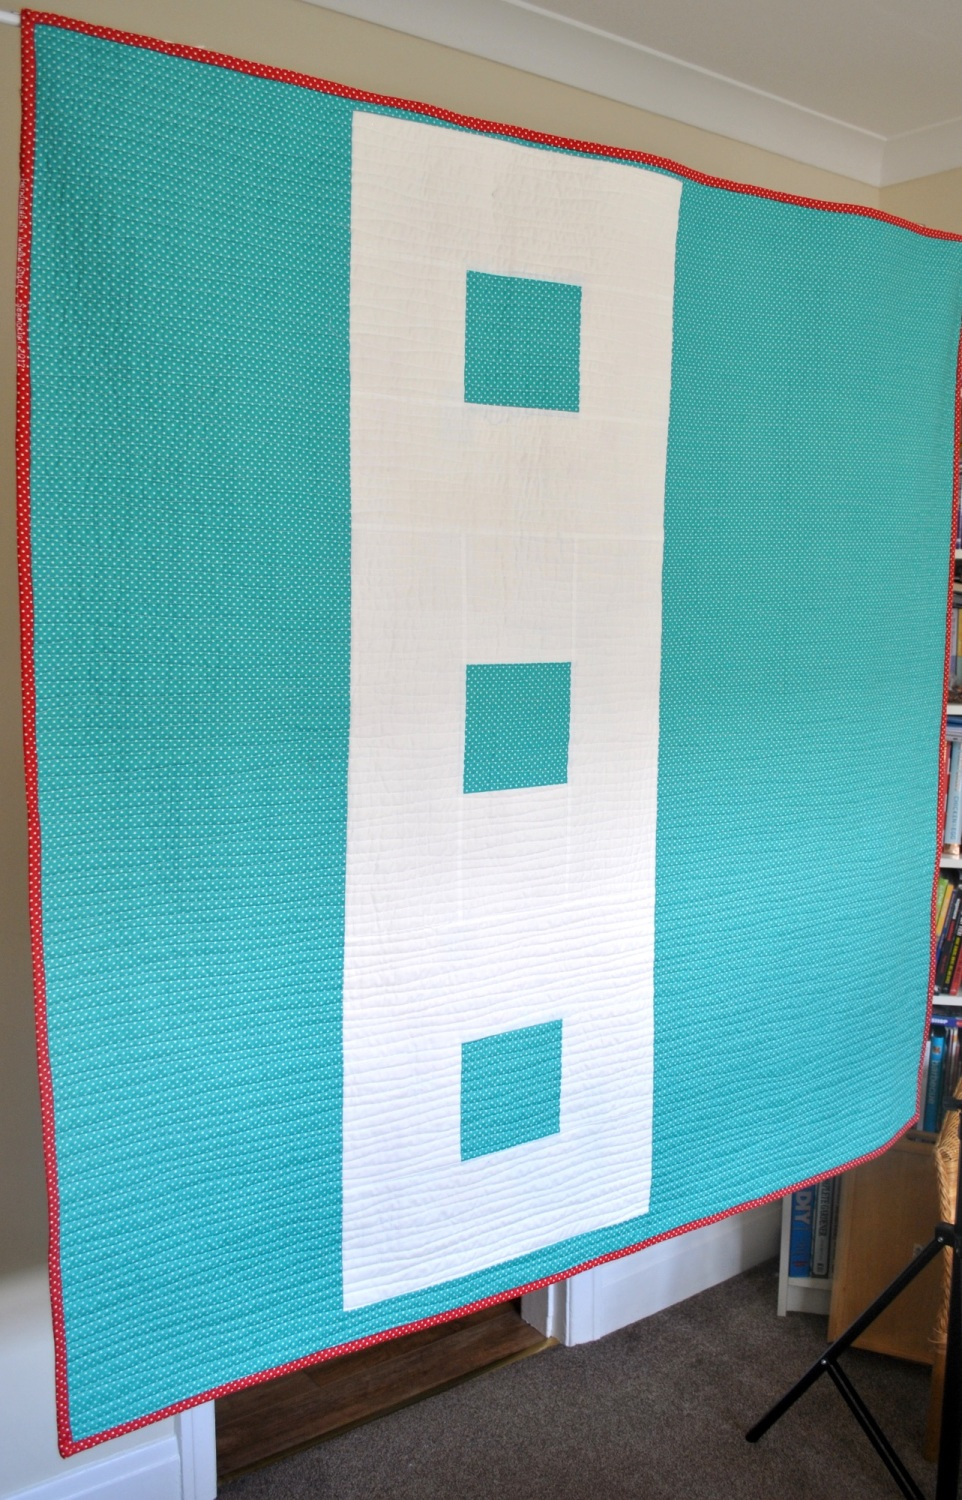 Backing Pack for All Squared Up Quilt in Happy Day Prints